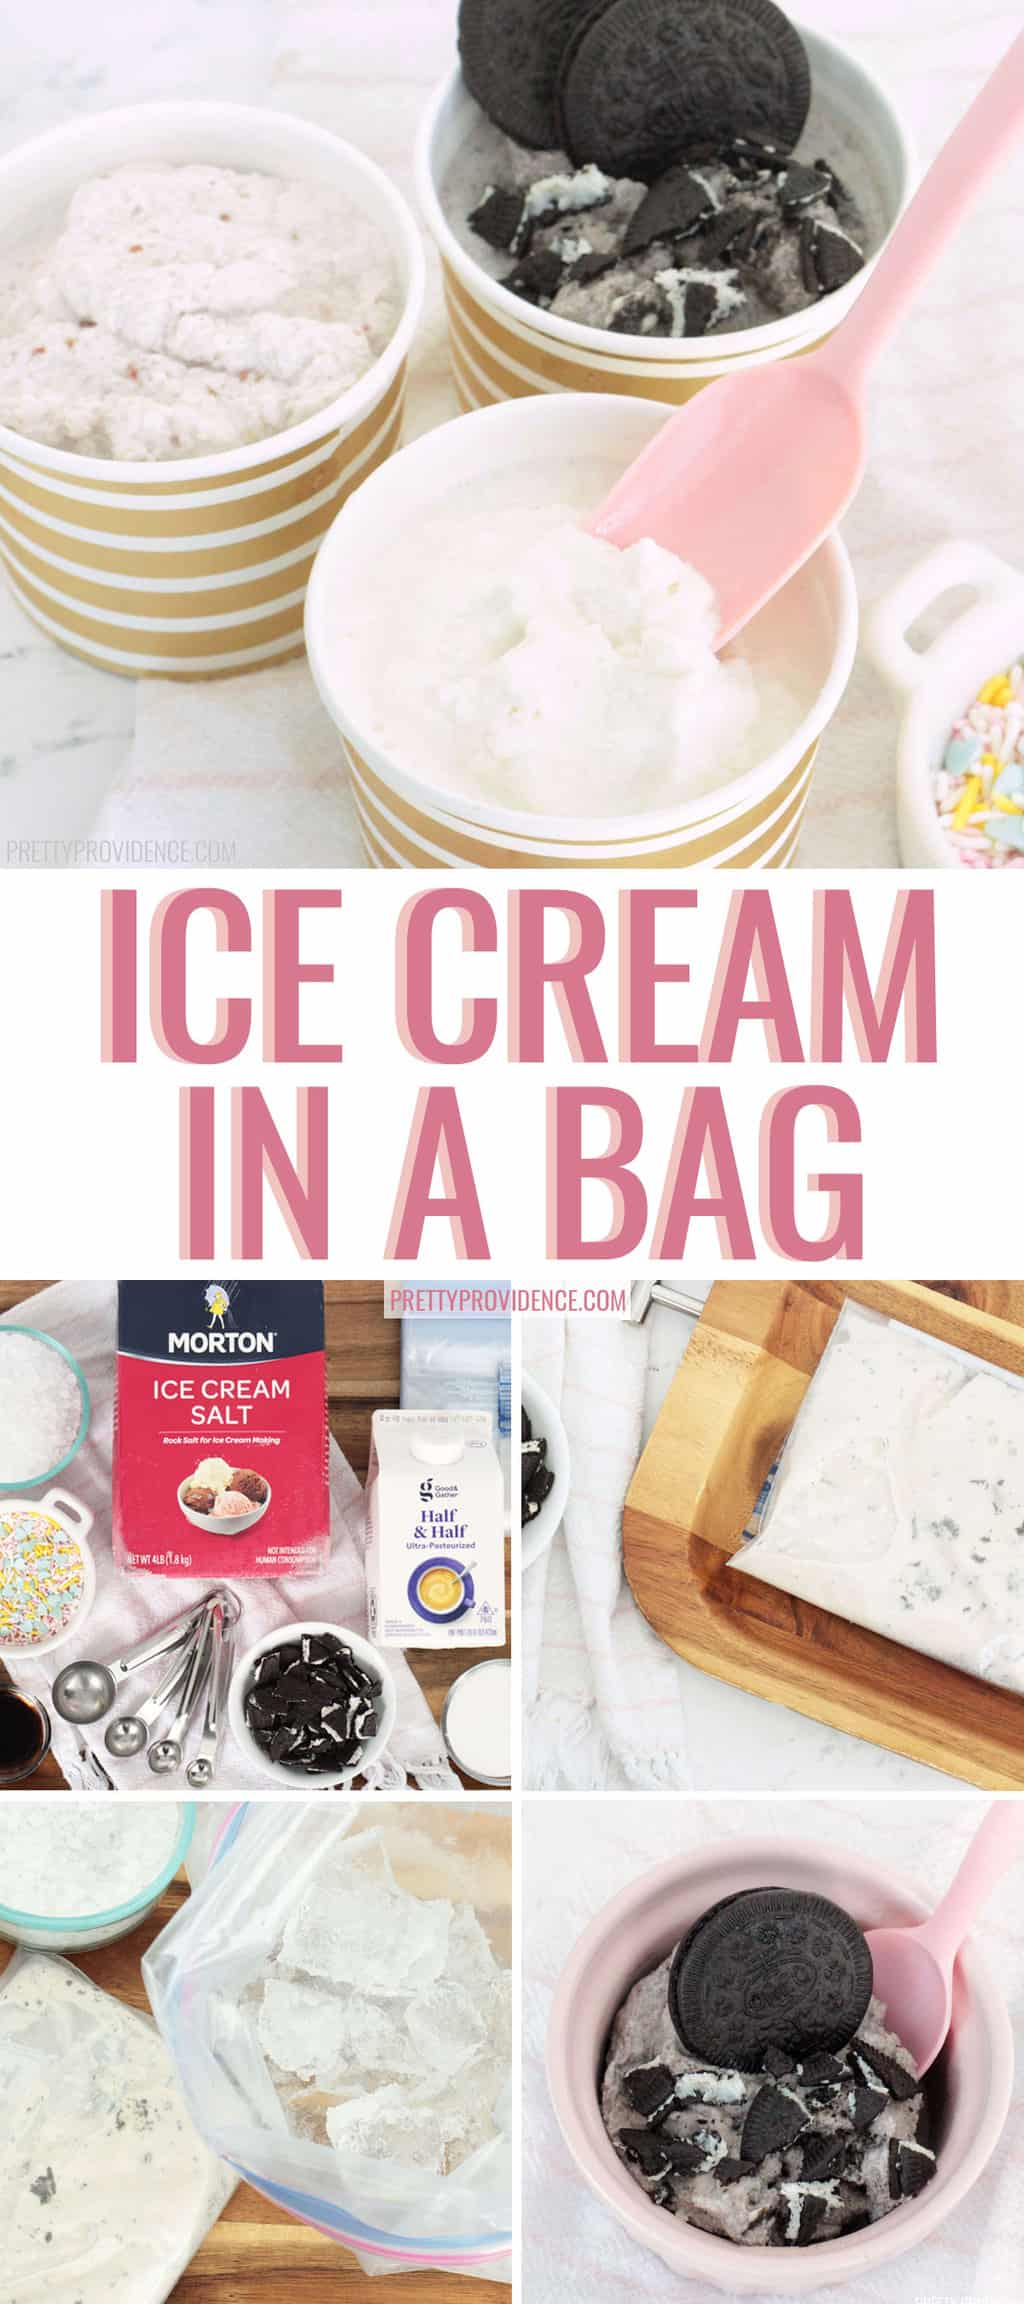 Fun and easy ice cream in a bag recipes and tutorial! Such a perfect summer family activity!